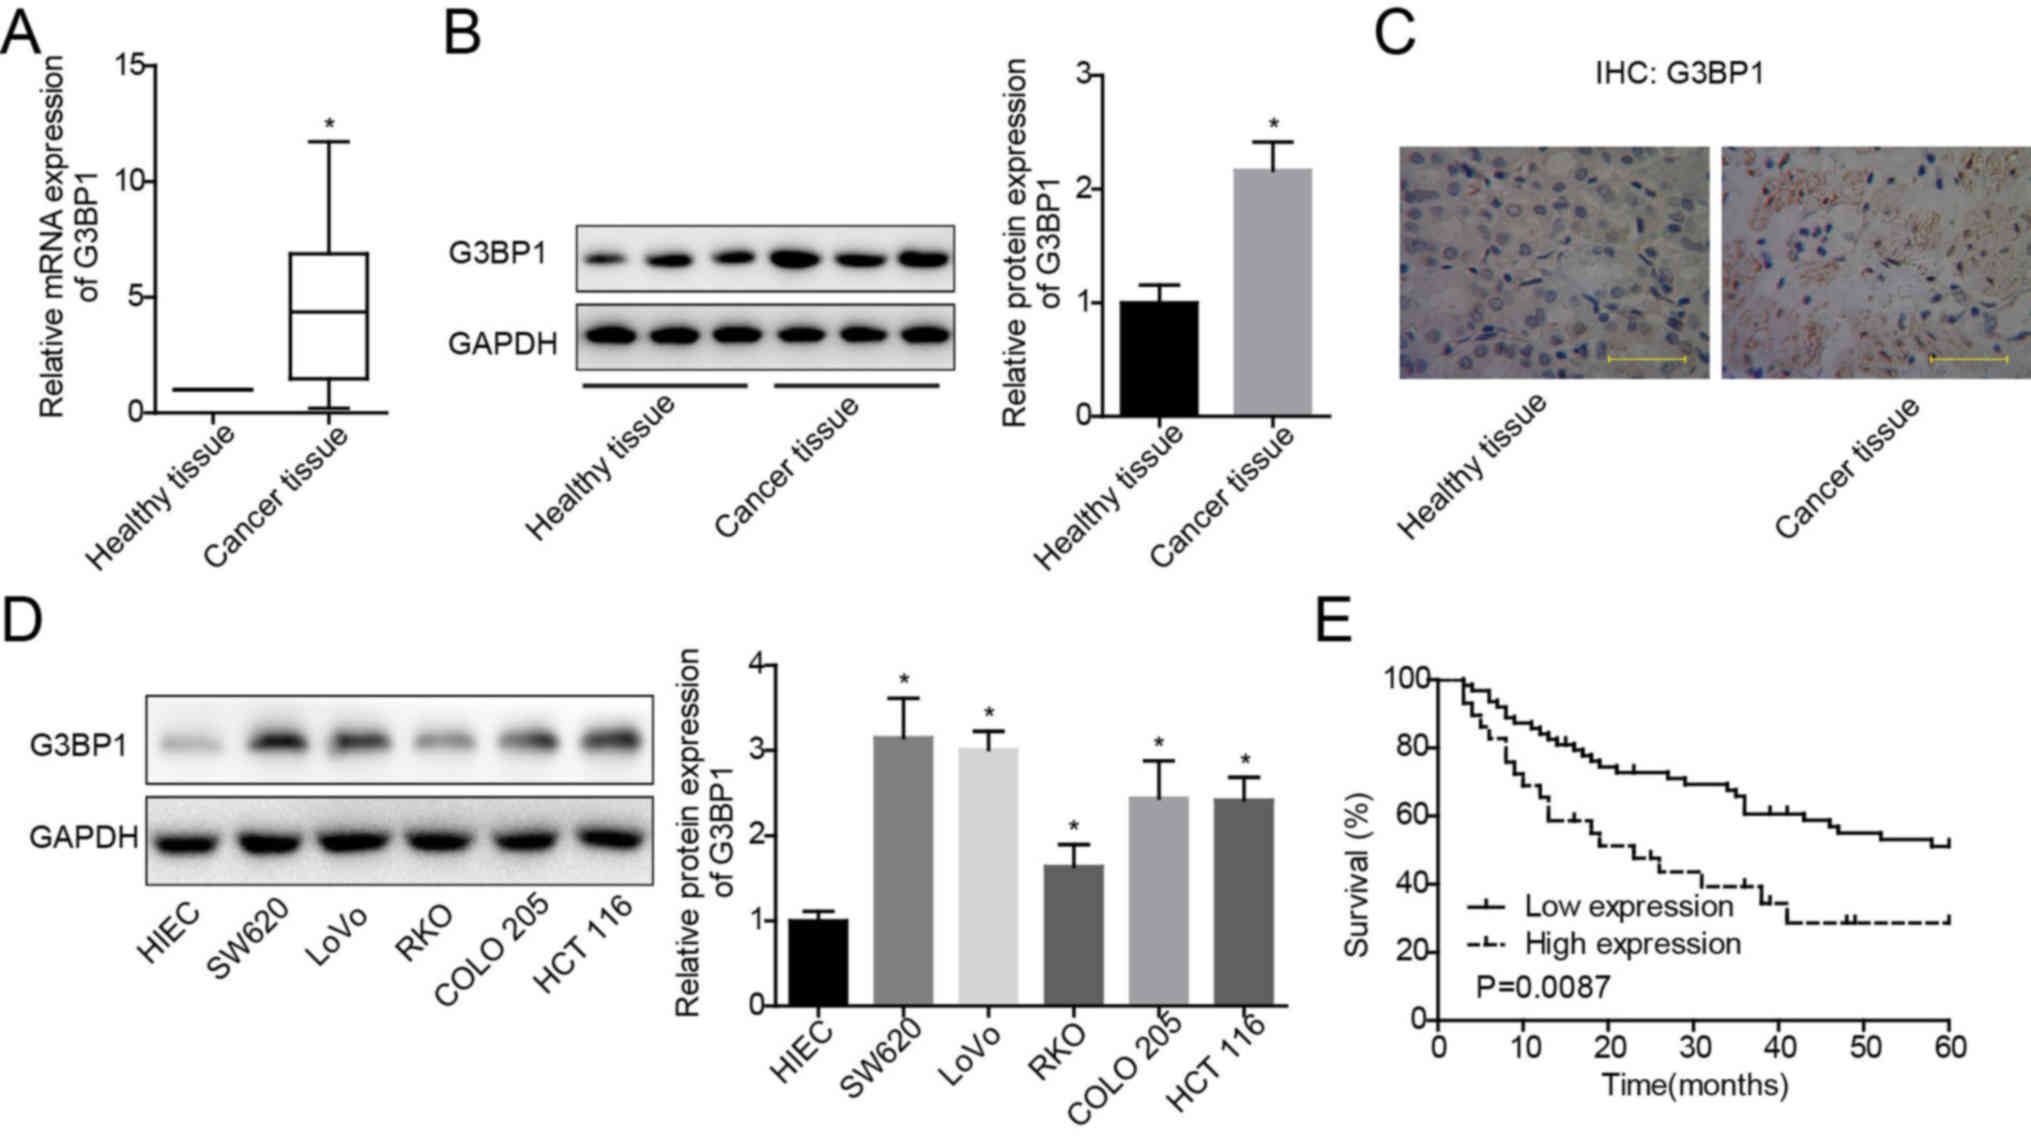 Overexpression Of G3bp1 Facilitates The Progression Of Colon Cancer By Activating B Catenin Signaling